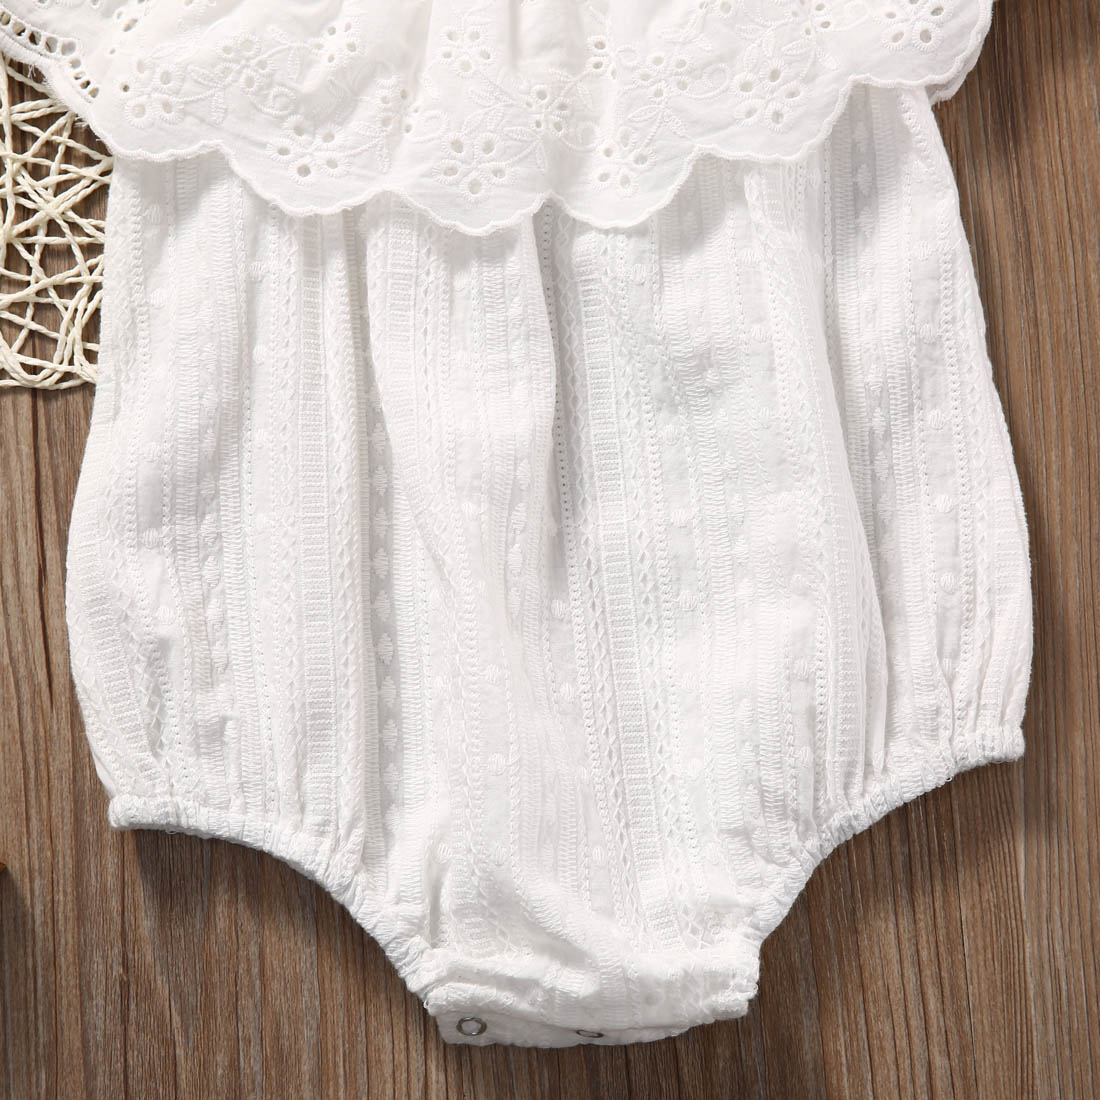 cc456696386 Soft Cotton Newborn Baby Girl Romper Clothes White Lace Playsuit Jumpsuit  Outfit Summer Bebes Cute Sunsuit 0 24M-in Bodysuits from Mother   Kids on  ...